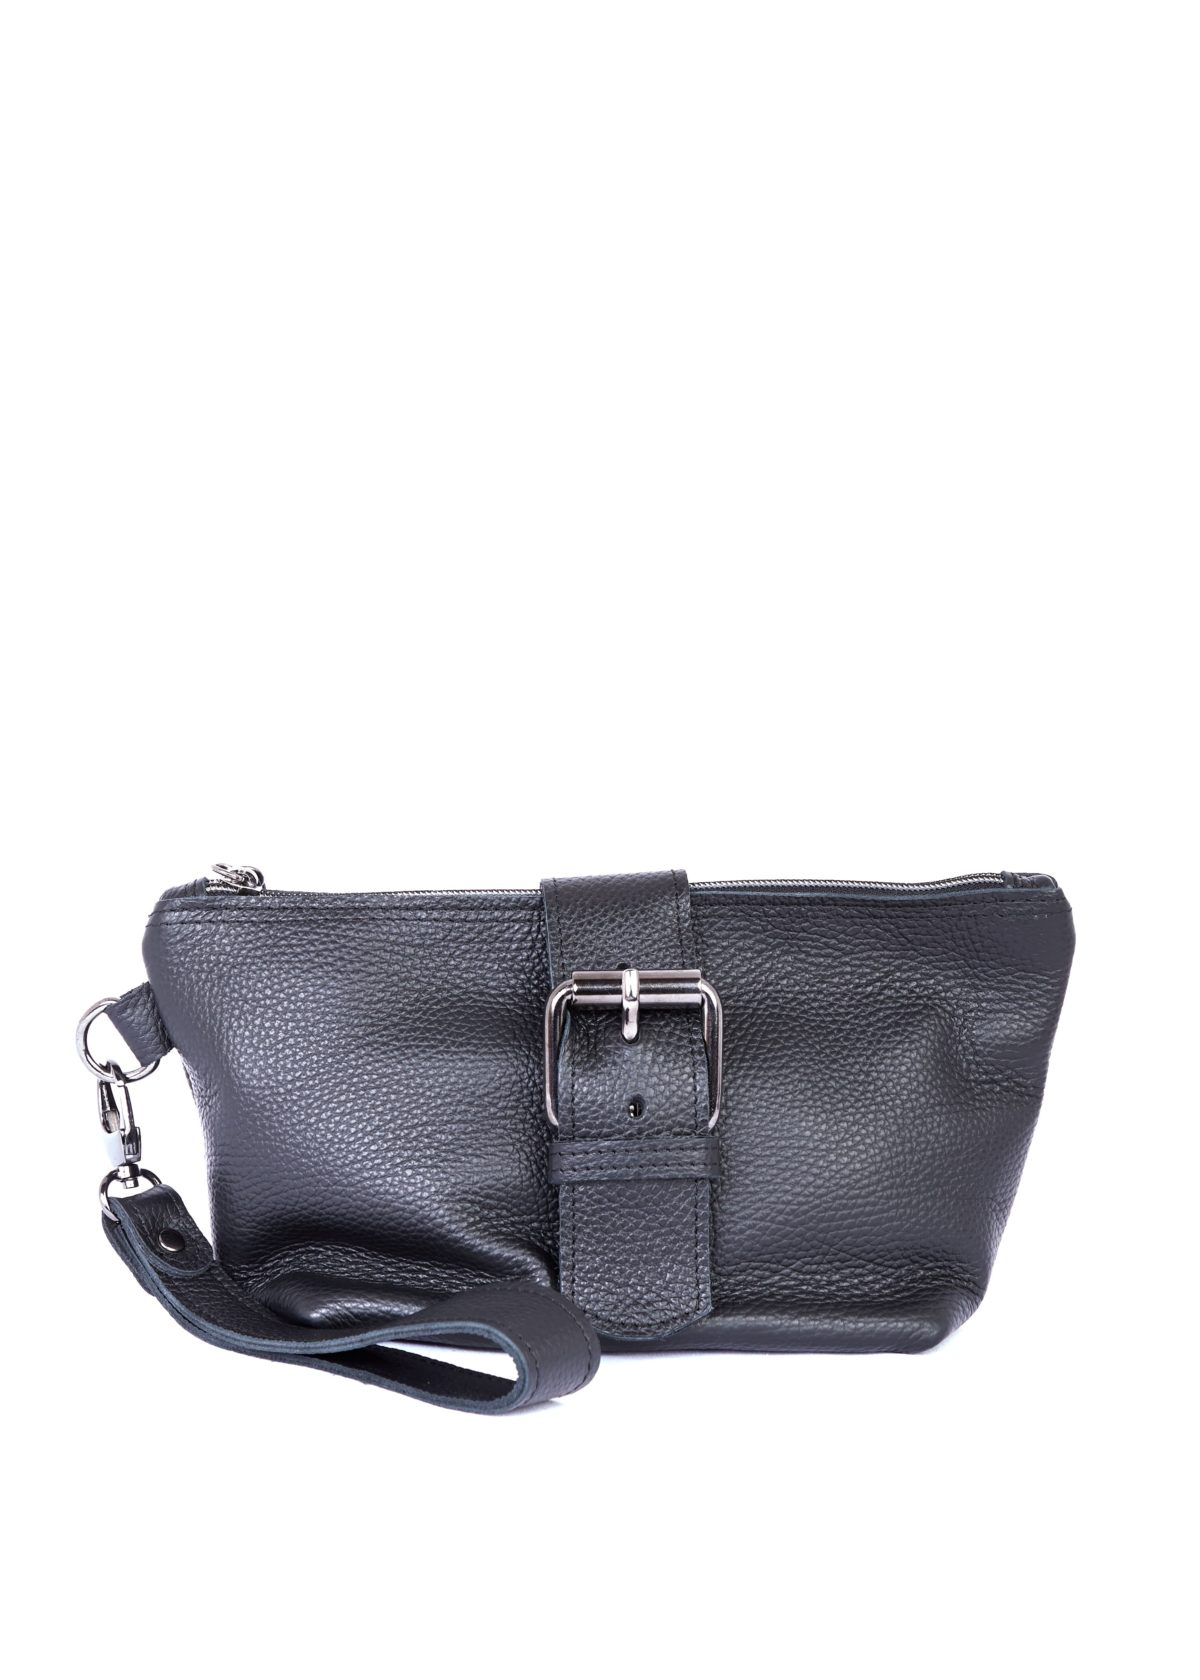 Day to Evening Clutch Black | Elena Athanasiou Bags | Not The Ordinary FW21 Collection